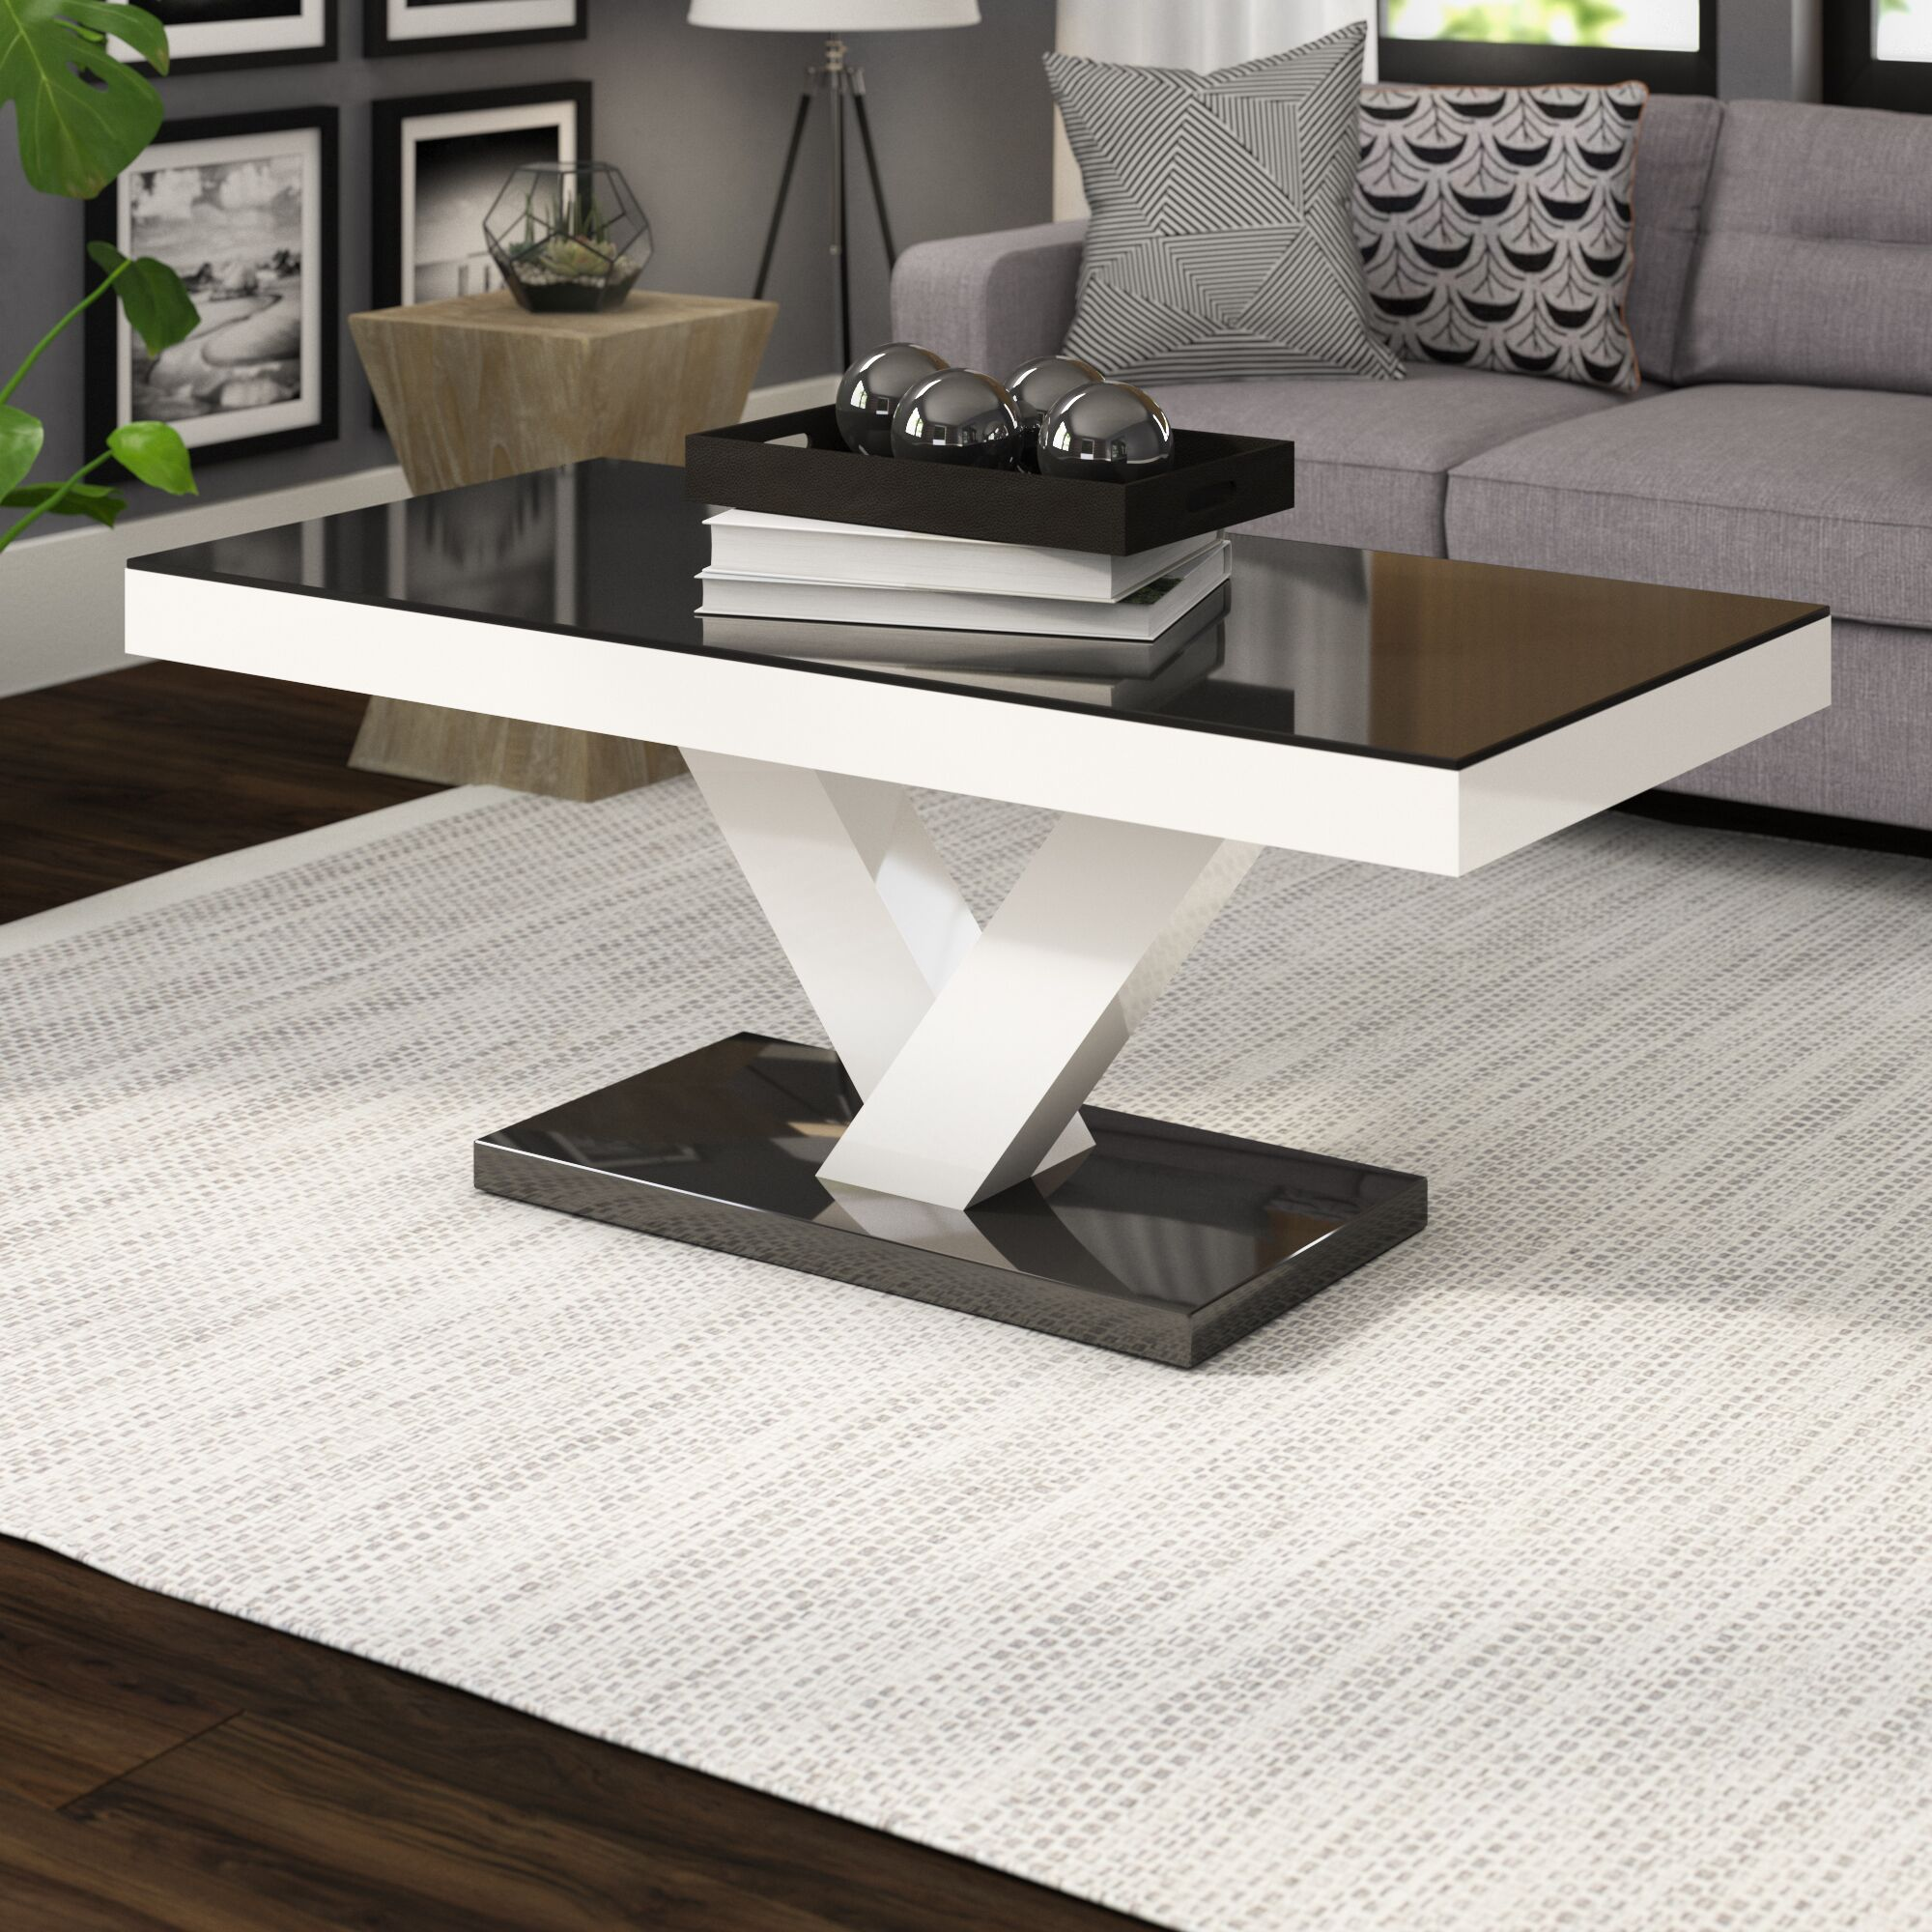 Thurmont Cross Legs Coffee Table Color: Black/White